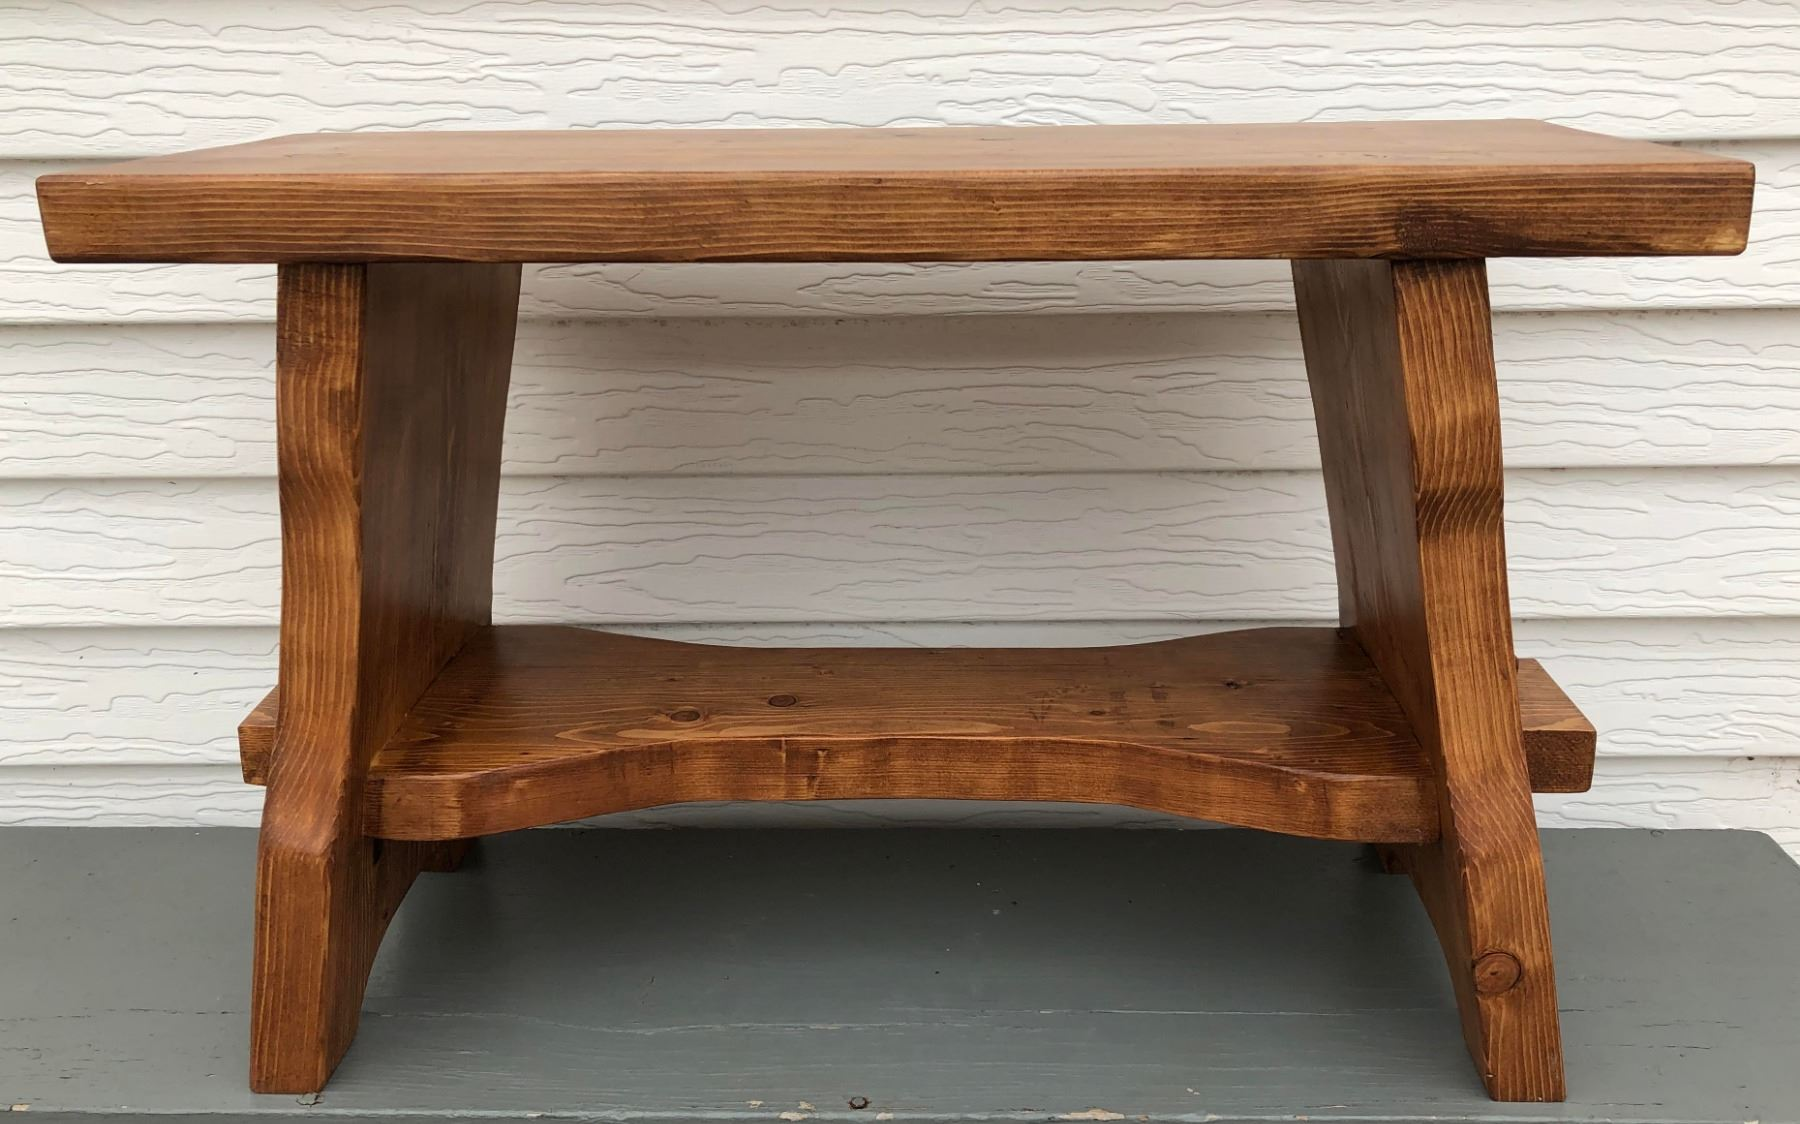 Hand Crafted Wooden Bench